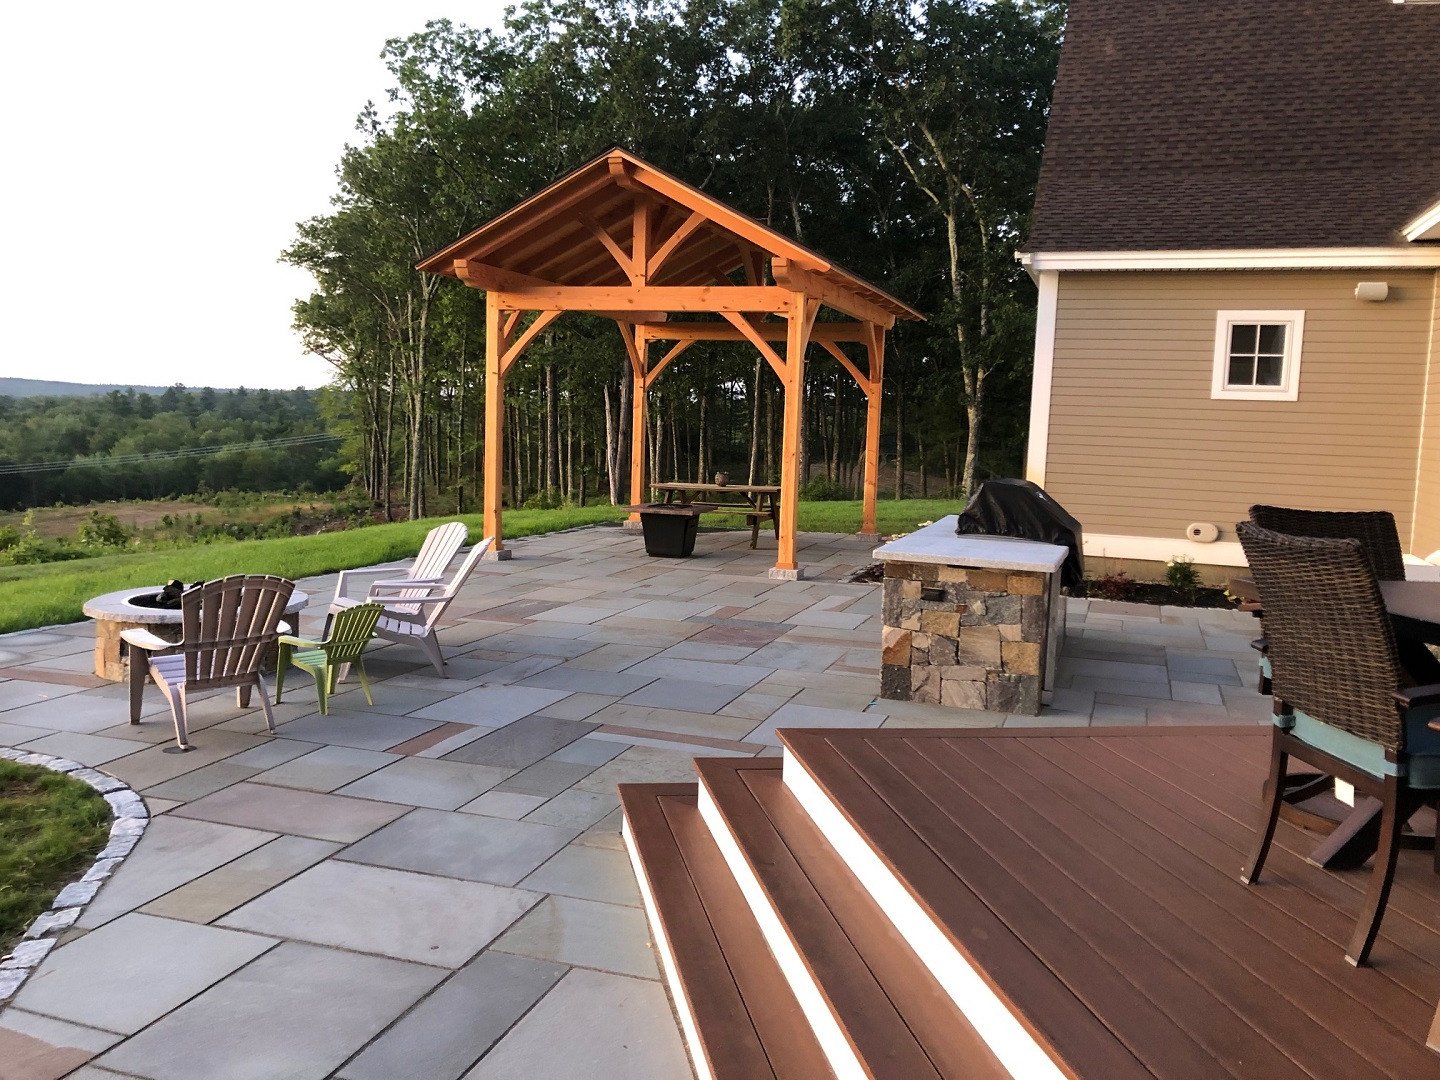 Top paver patio in Bedford NH